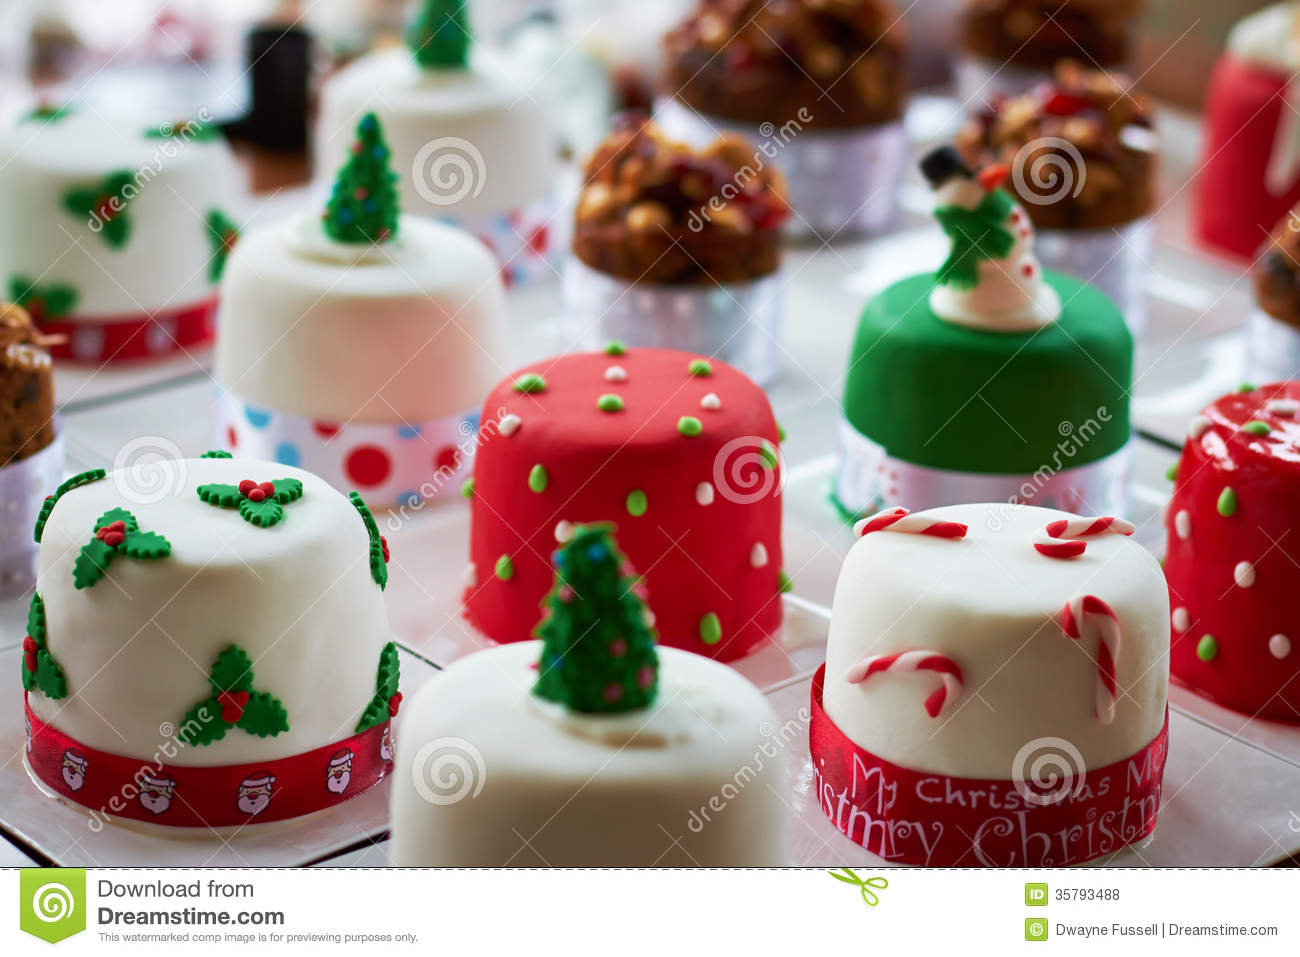 M And S Small Xmas Cakes